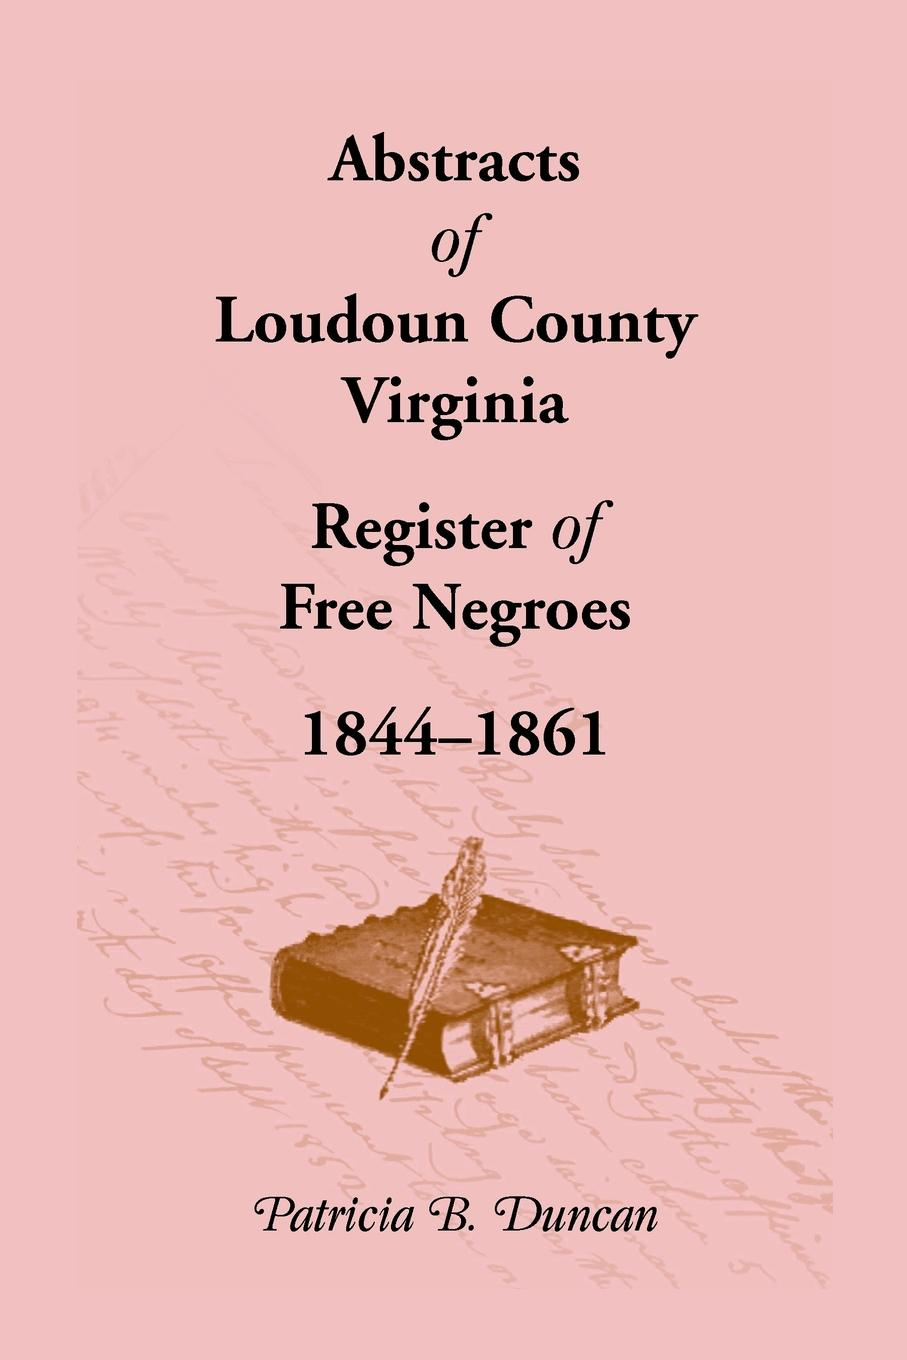 Patricia B. Duncan Abstracts of Loudoun County, Virginia Register of Free Negroes, 1844-1861 patricia b duncan genealogical abstracts from the brunswick herald brunswick maryland 2 january 1903 to 29 june 1906